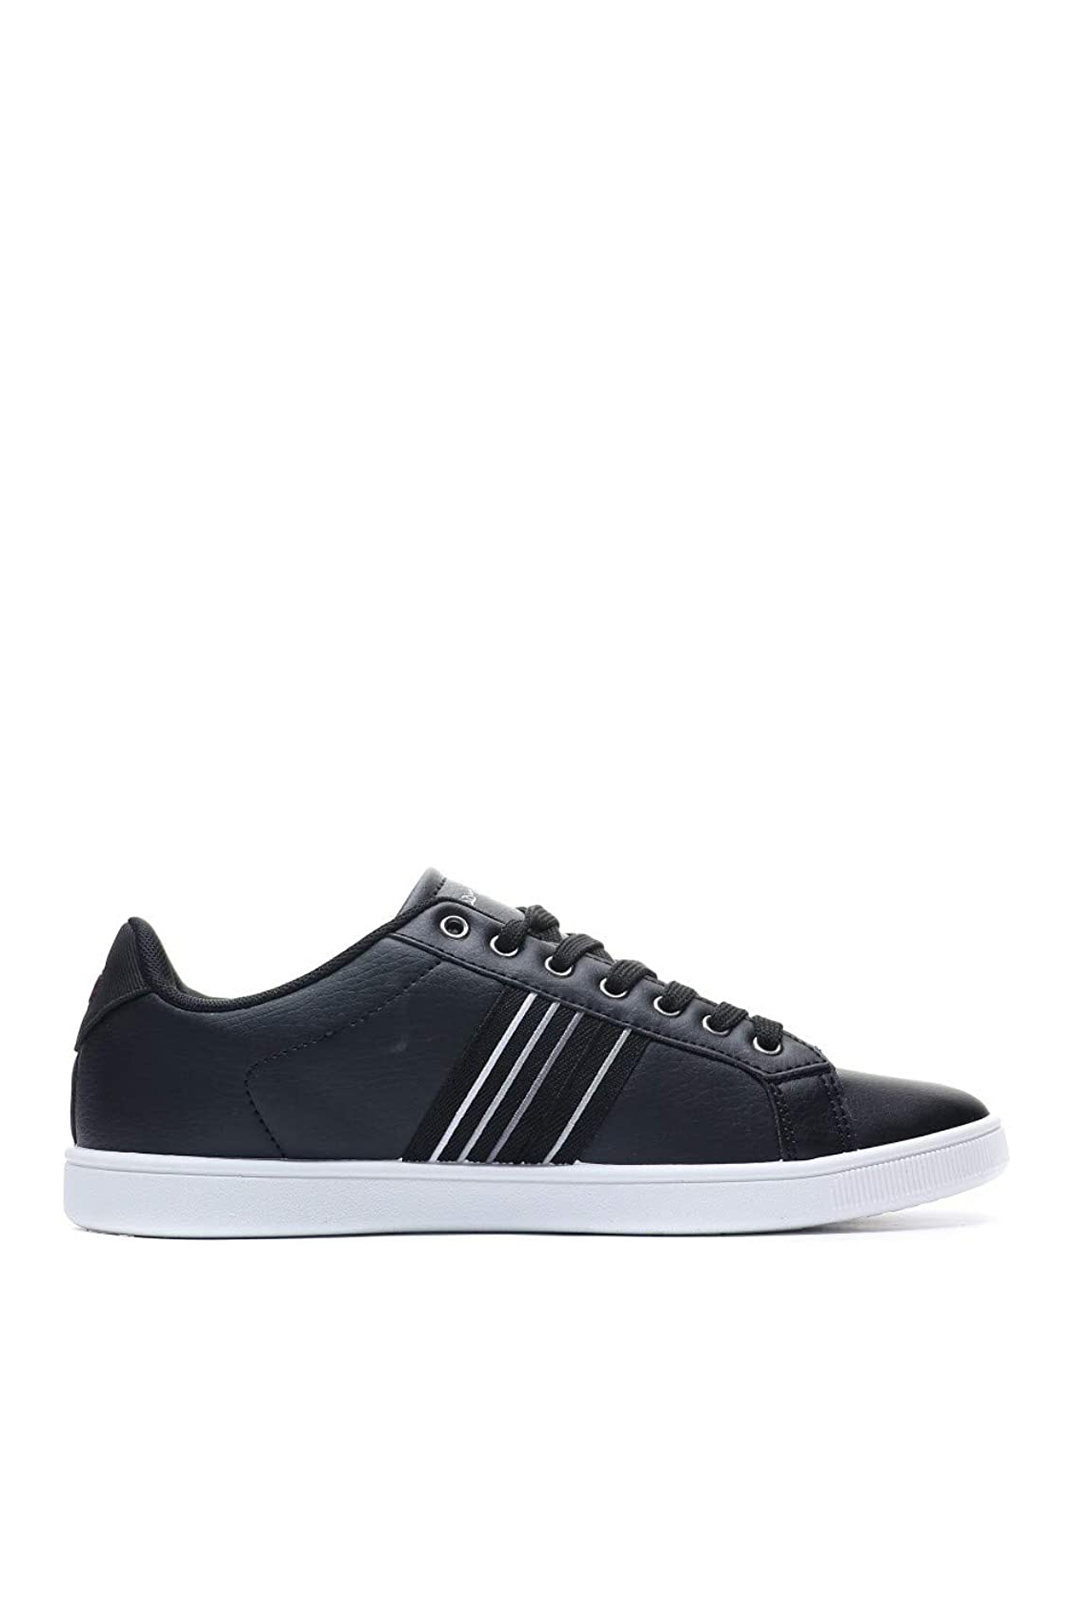 Baskets / Sport  Teddy smith THOR BLACK GREY